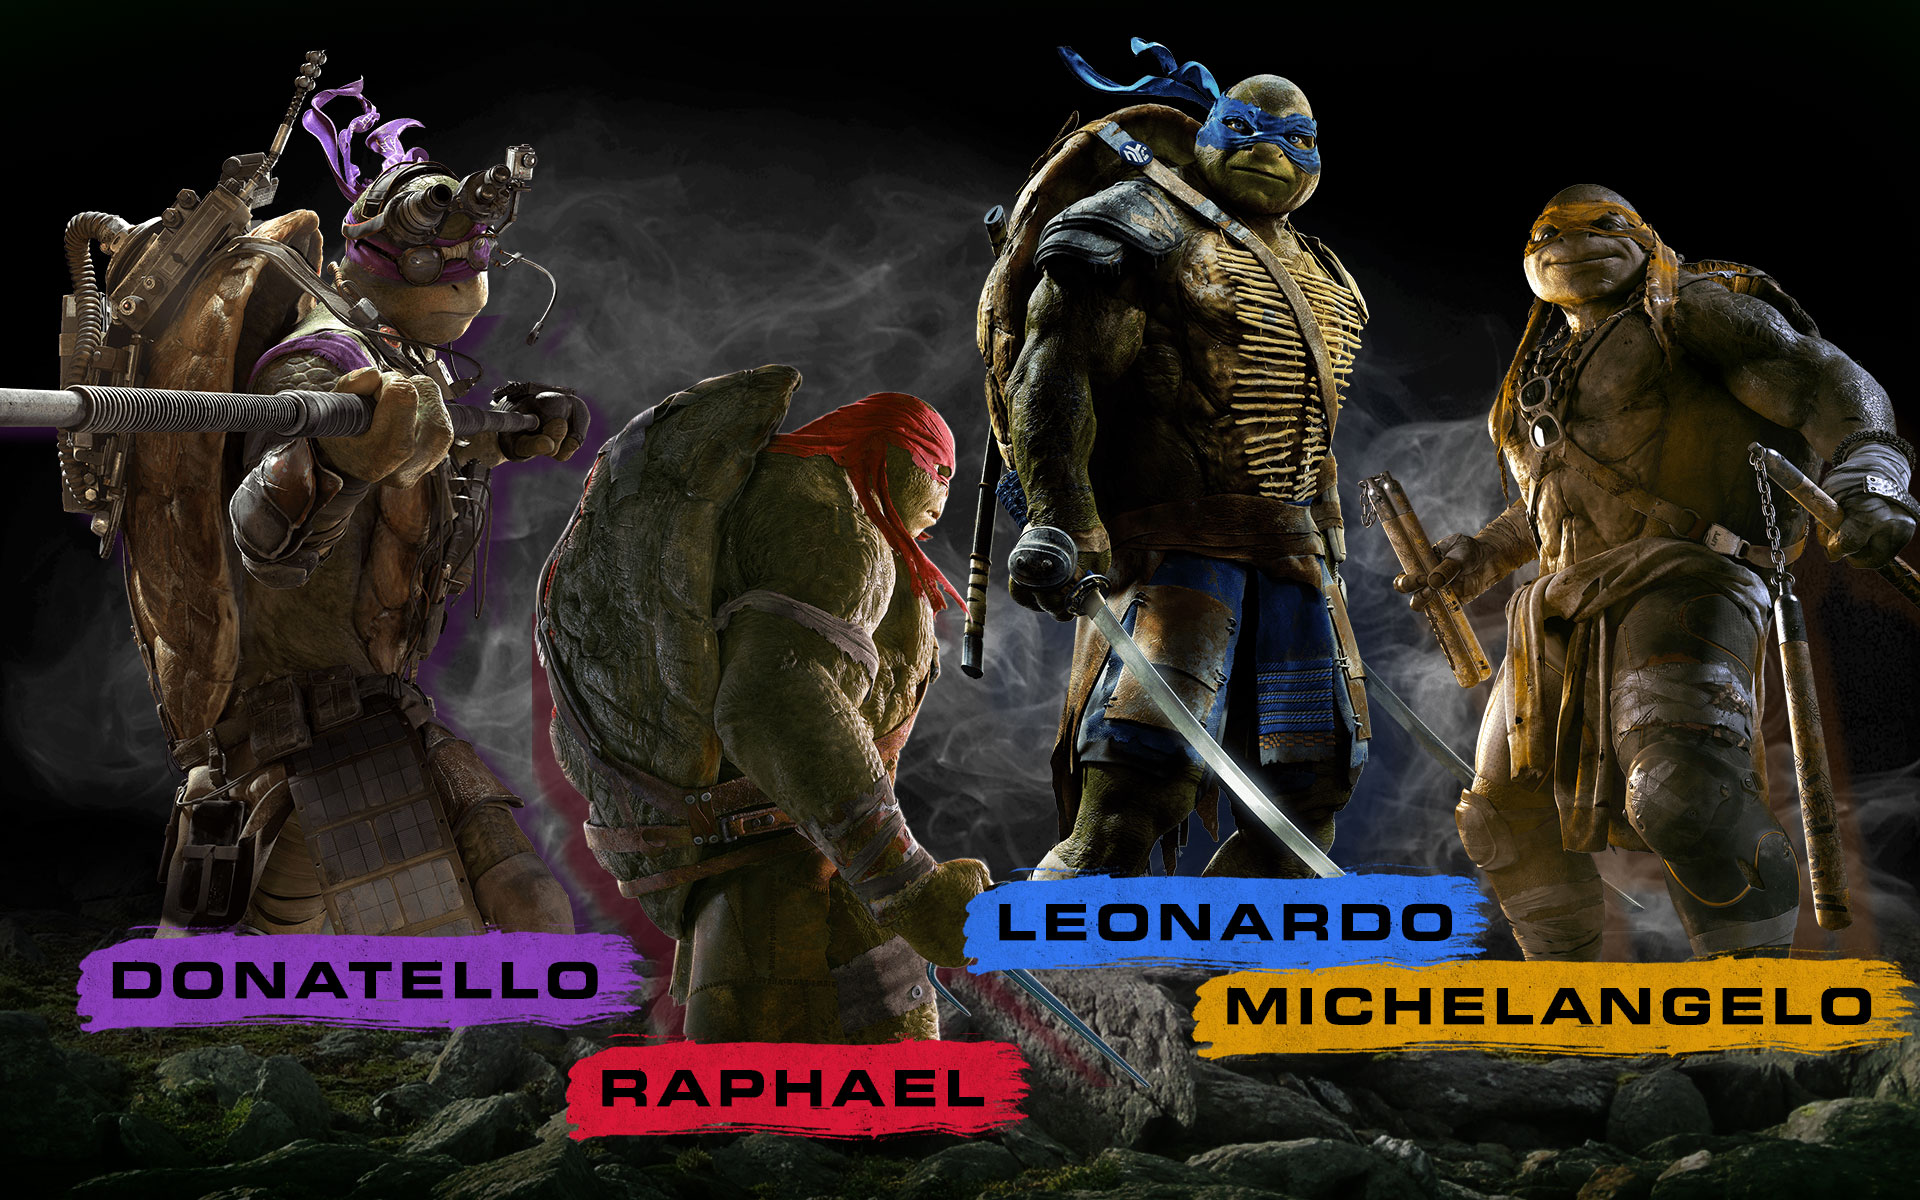 41 Ninja Turtles 2014 Wallpaper On Wallpapersafari